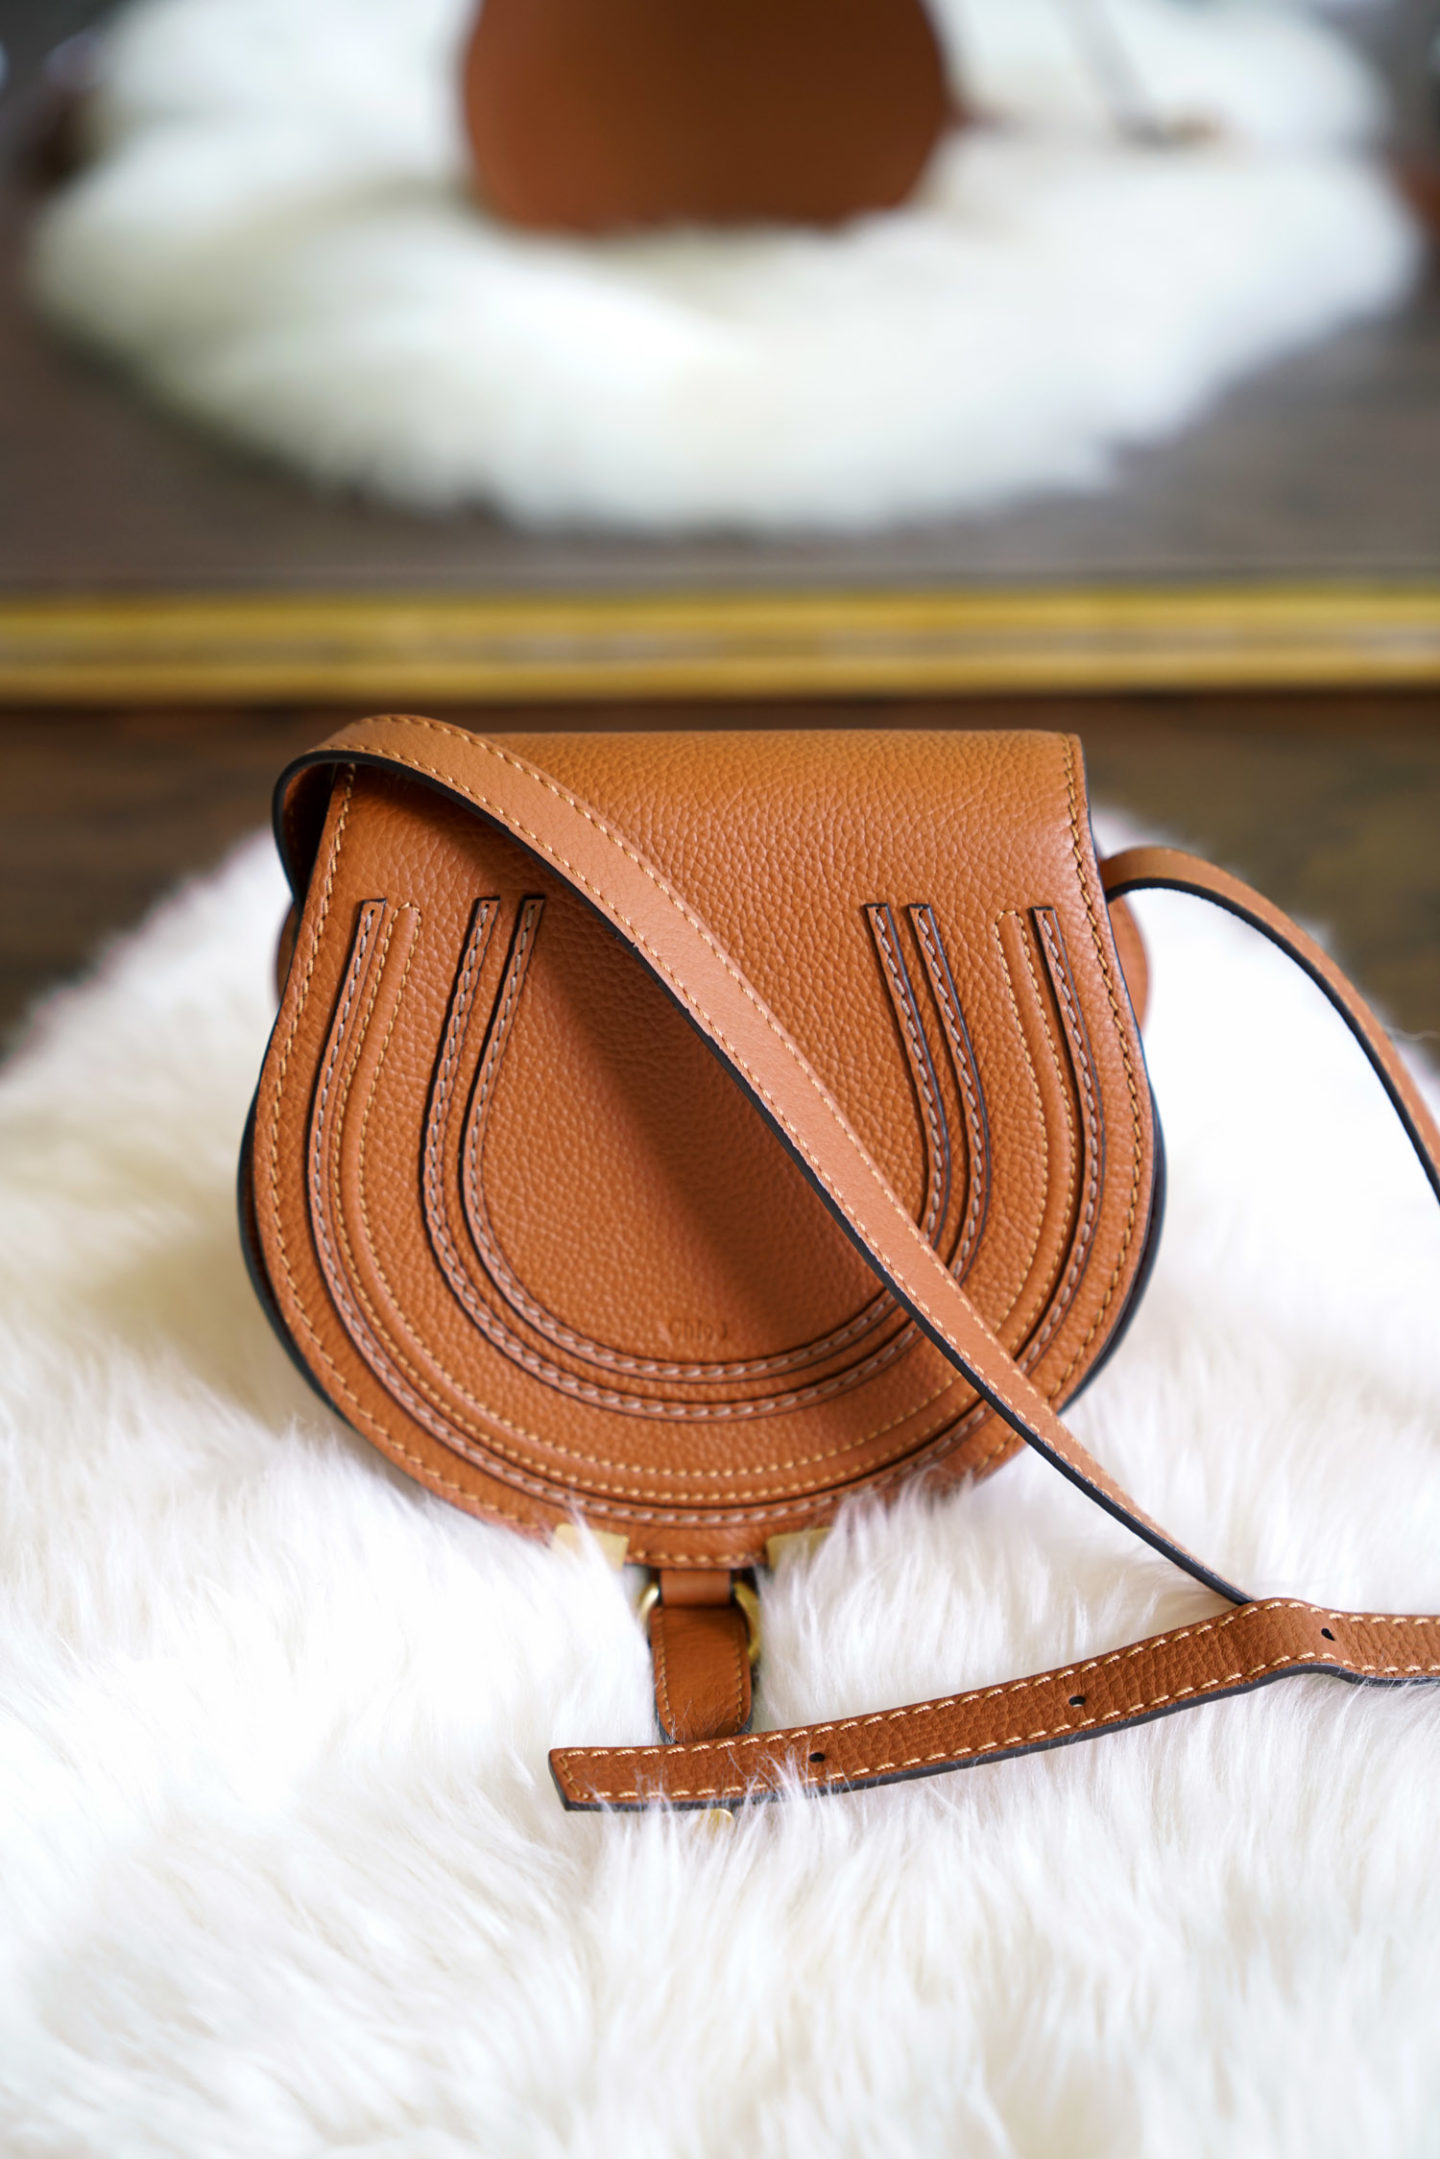 Chloe Mini Marcie Purse Review | The Beauty Look Book